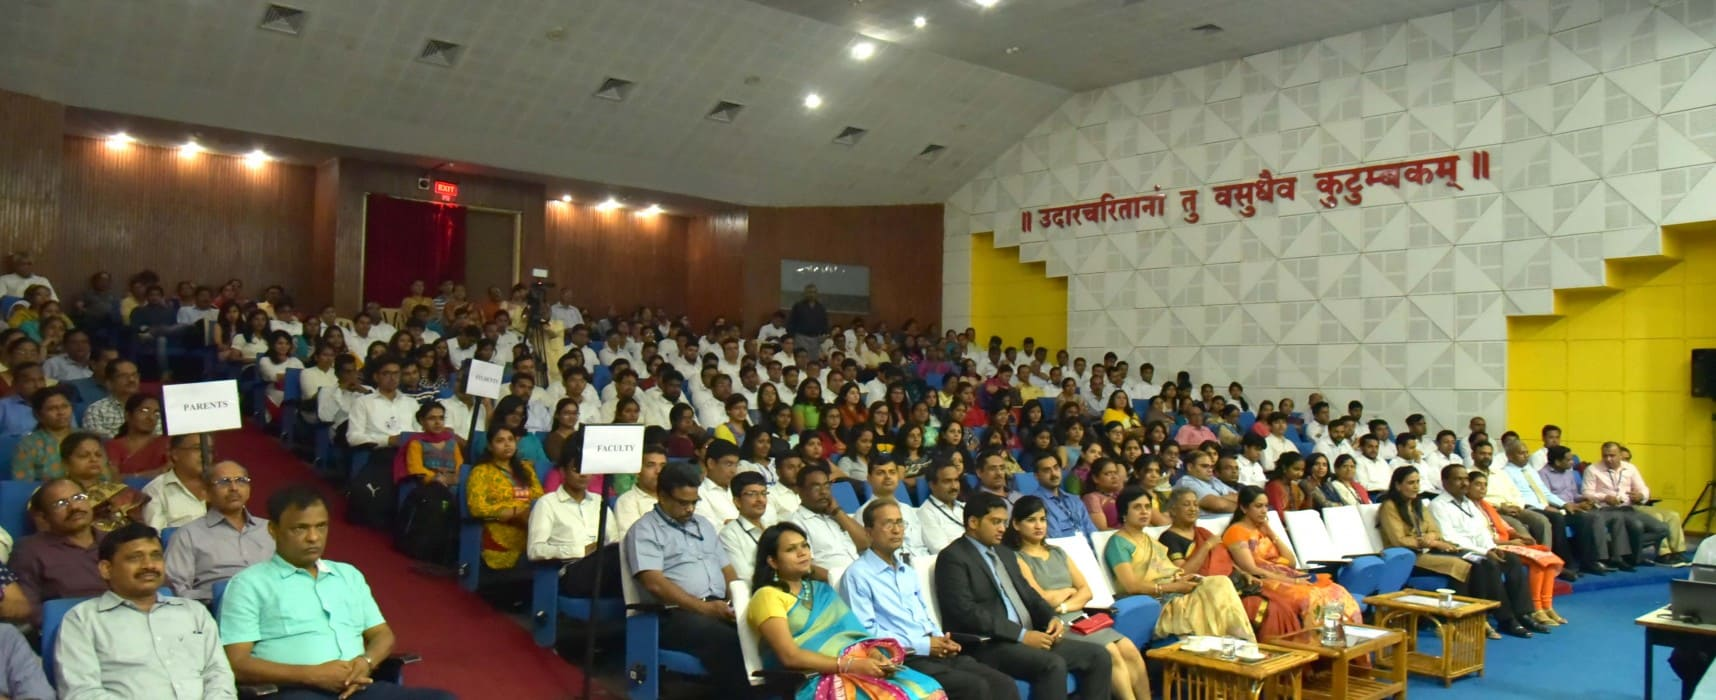 Inaugurating the beginning of a new academic year at SCIT for MBA(ITBM) students